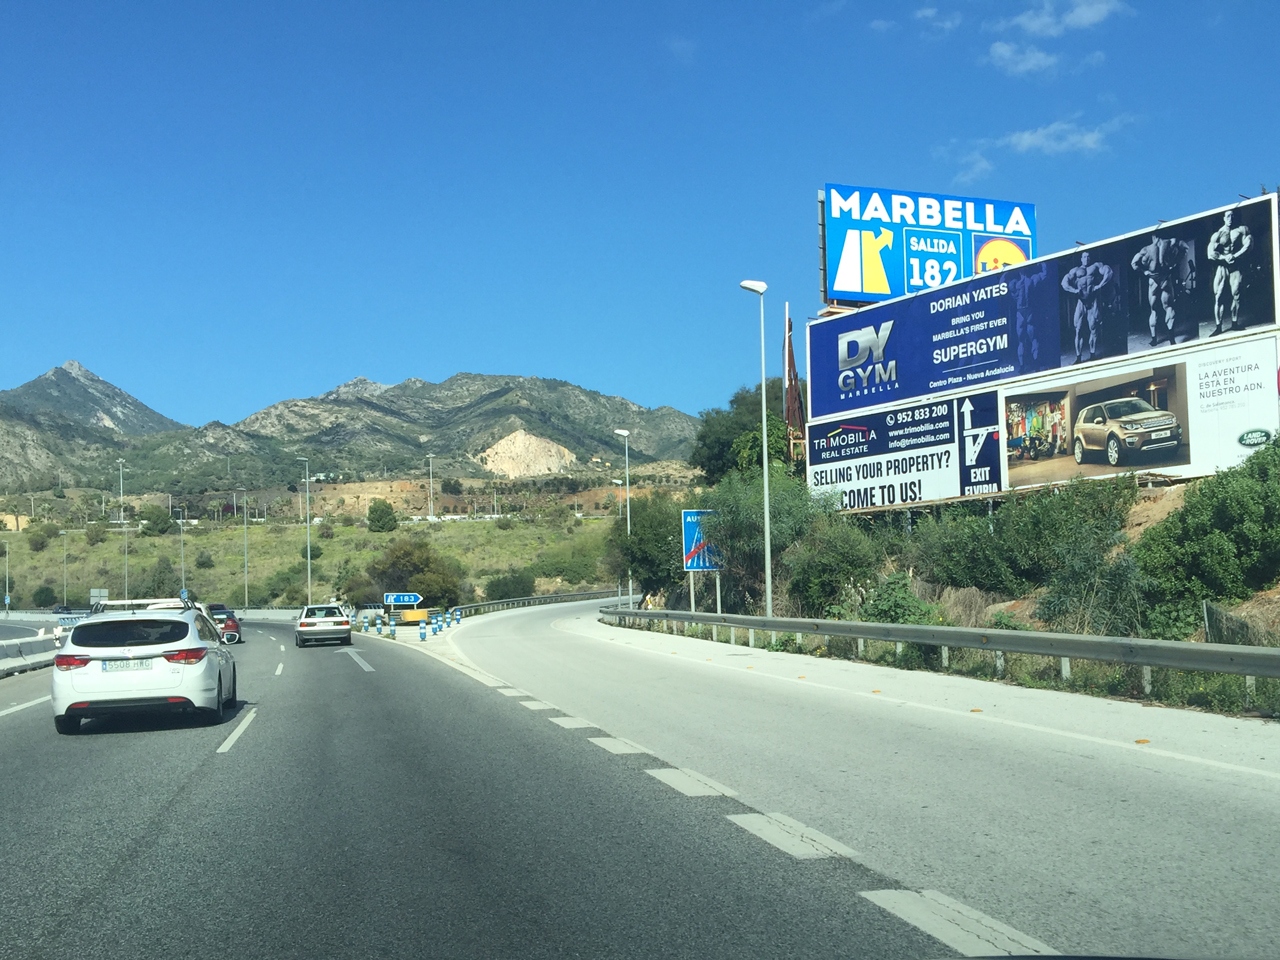 Advertising billboards campaign for DY GYM Marbella